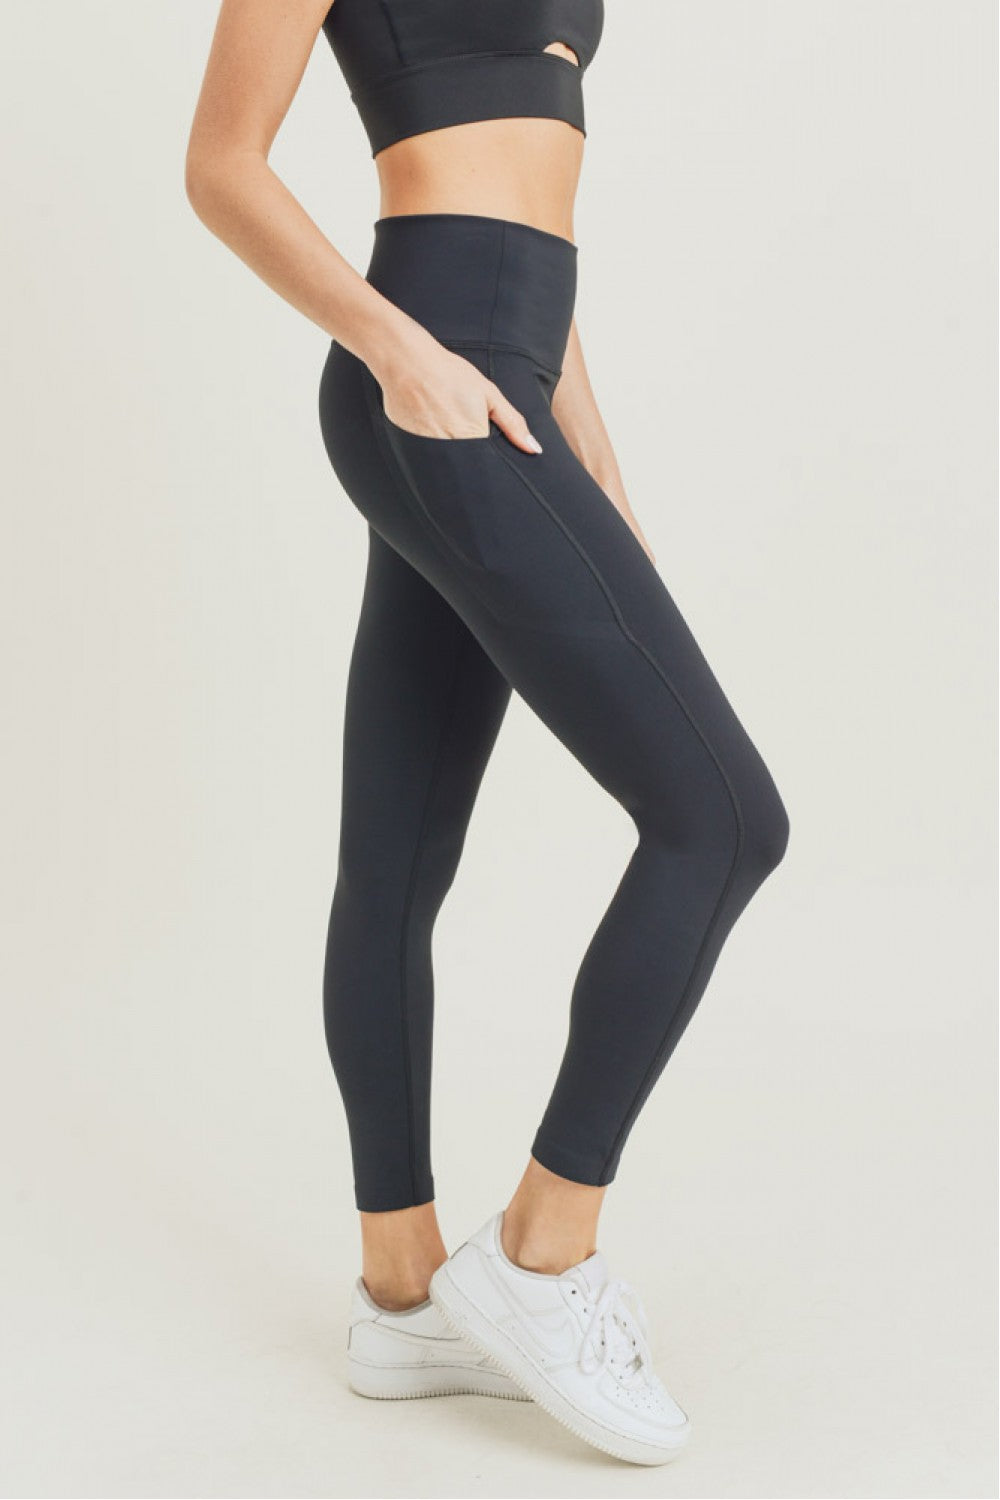 Laser Cut Essential Foldover Highwaist Legging